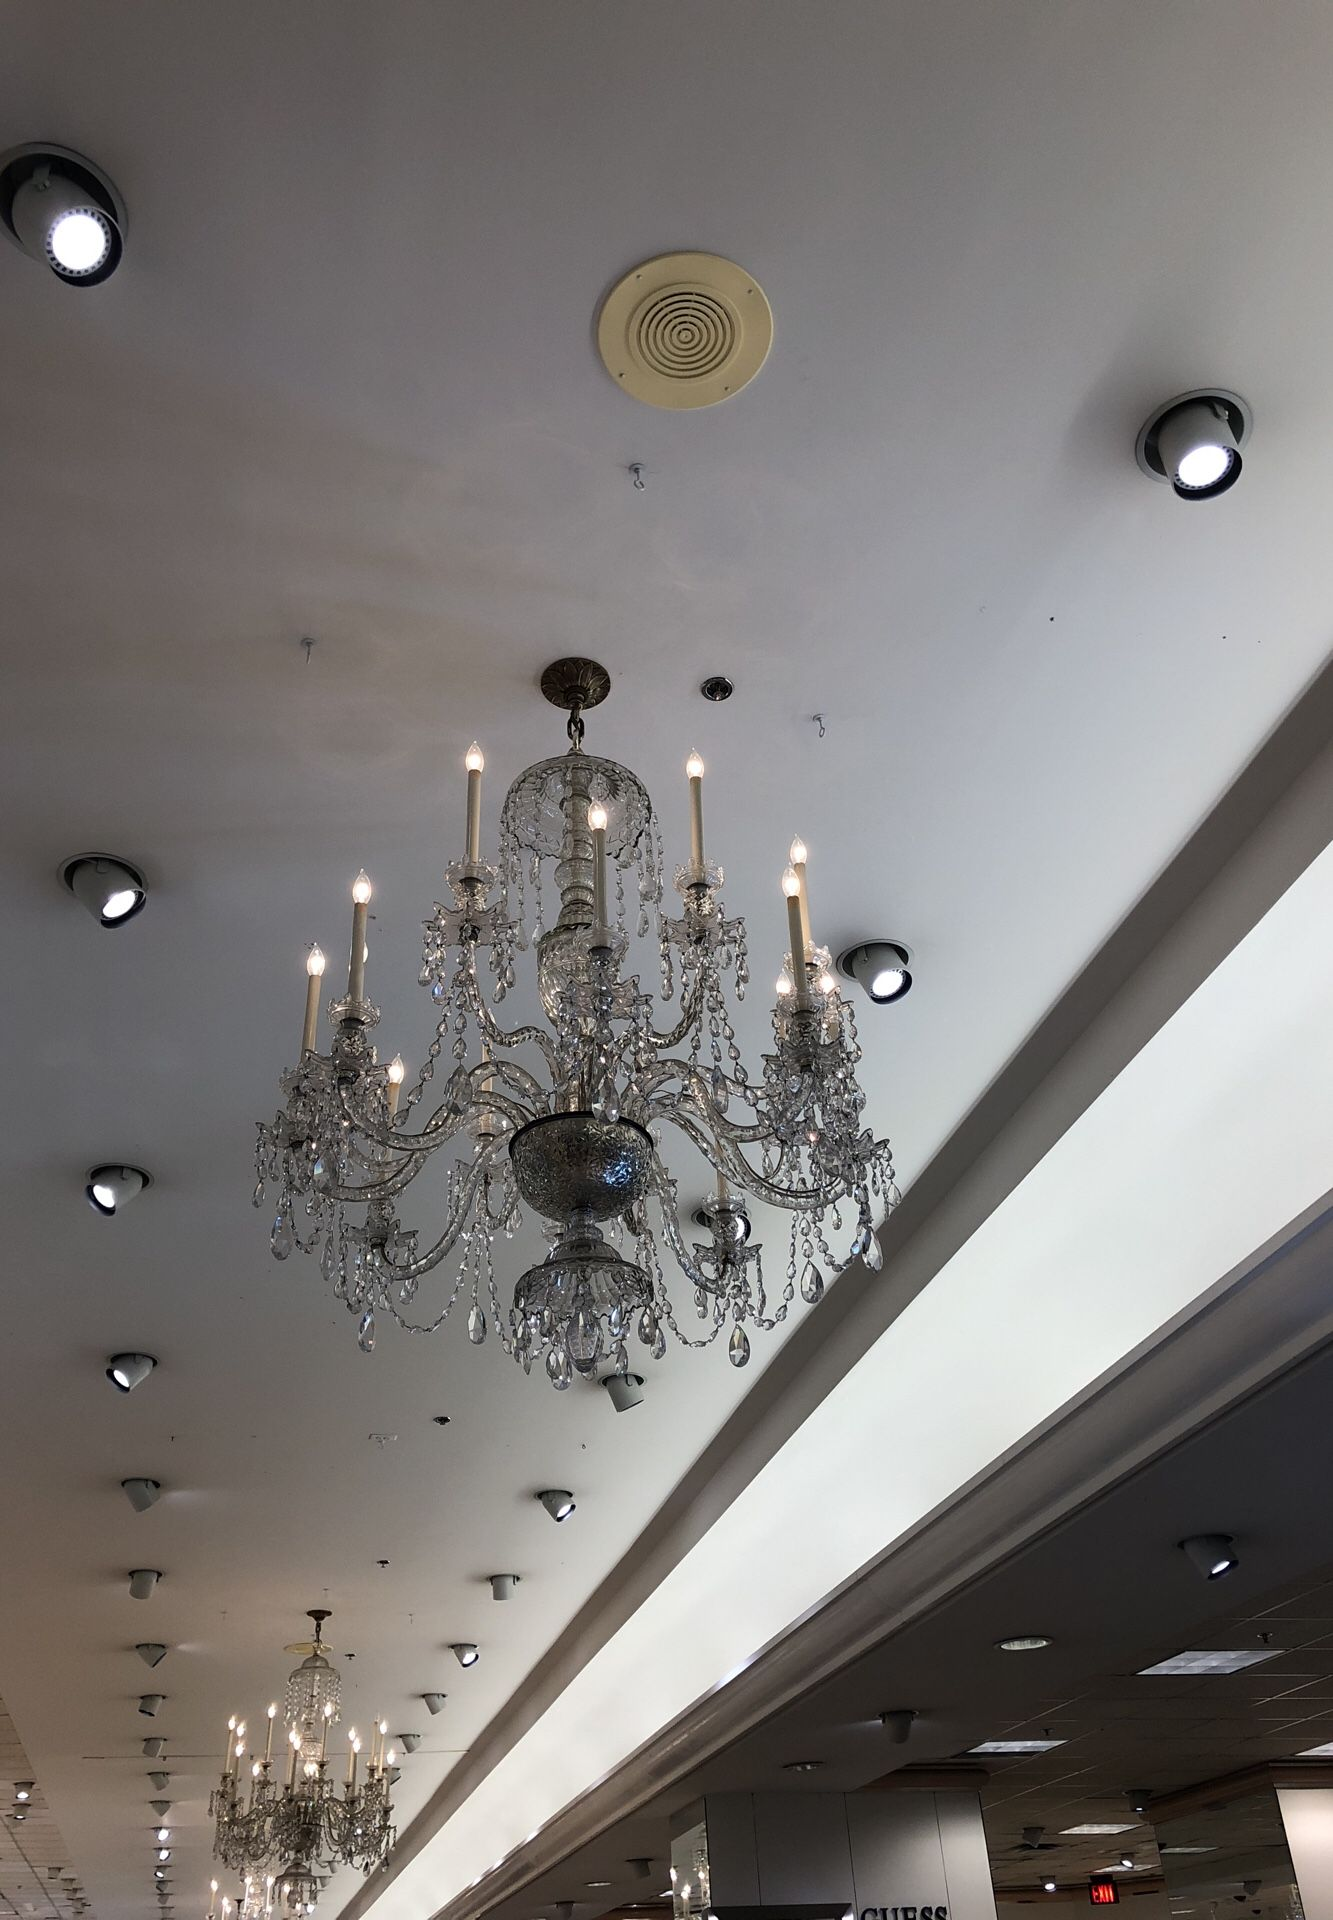 Waterford - 60's era crystal chandelier @ 1,000.00 each - own 10 pieces.